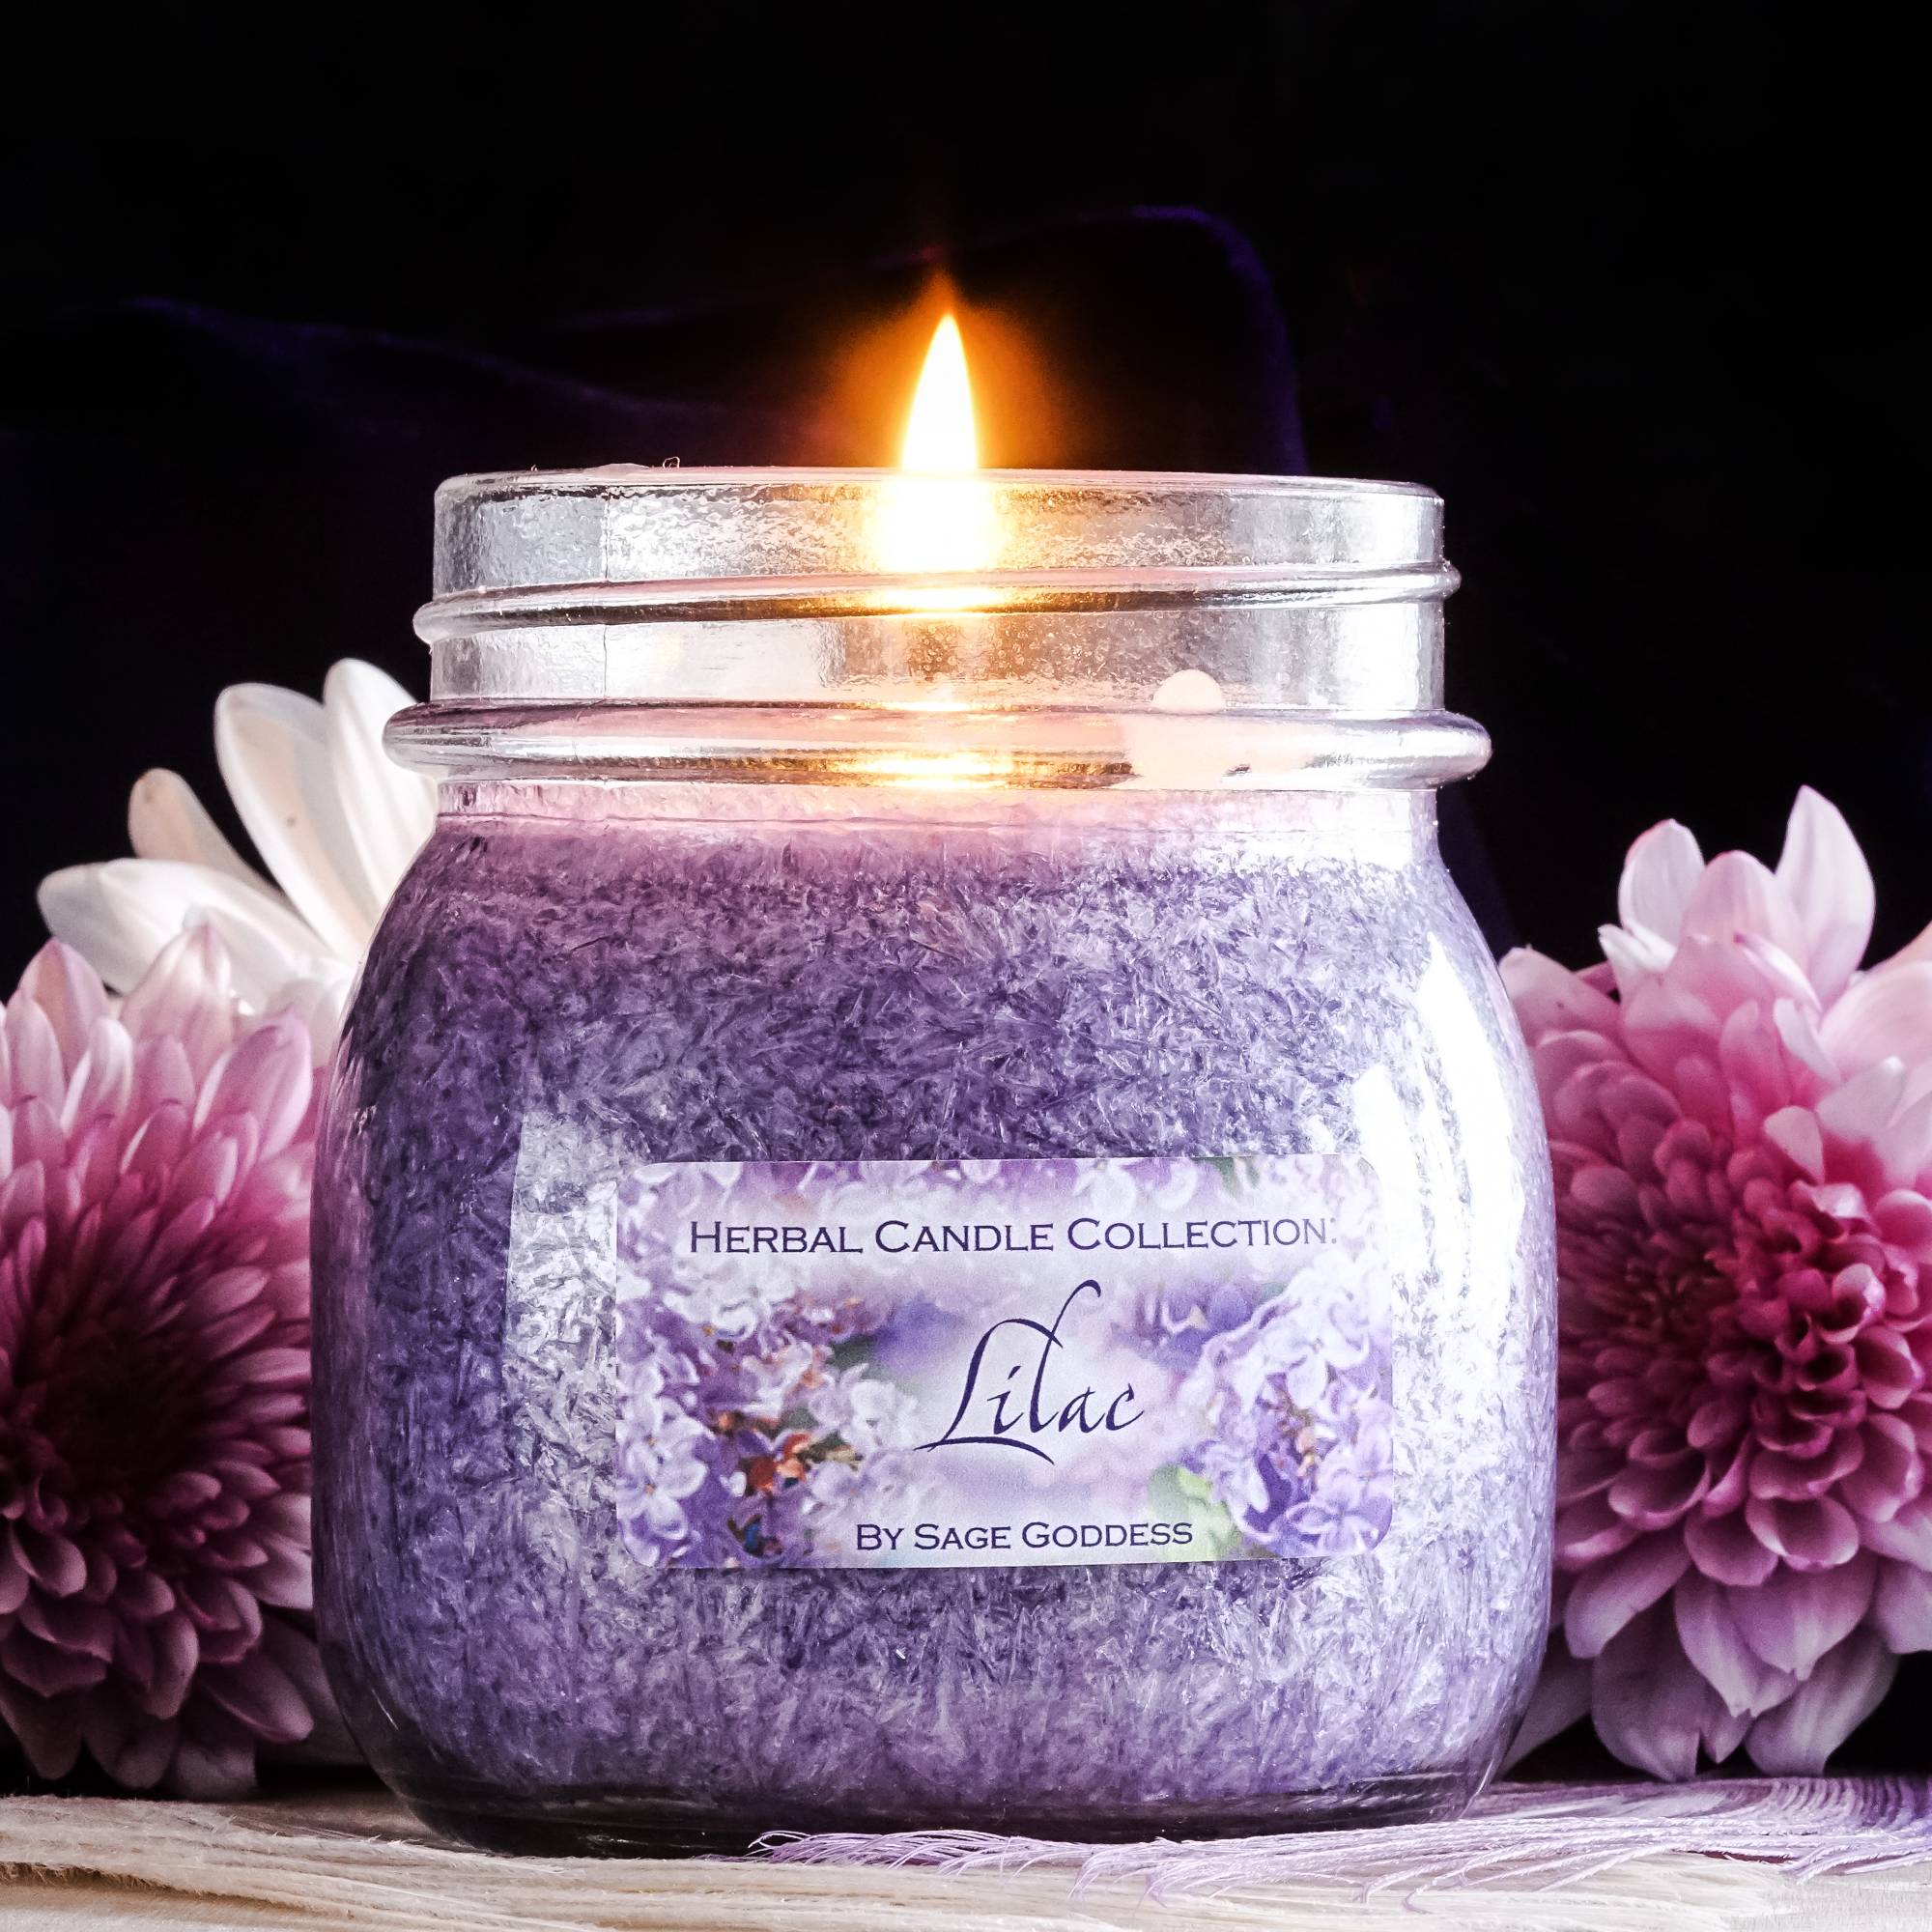 lilac herbal candle